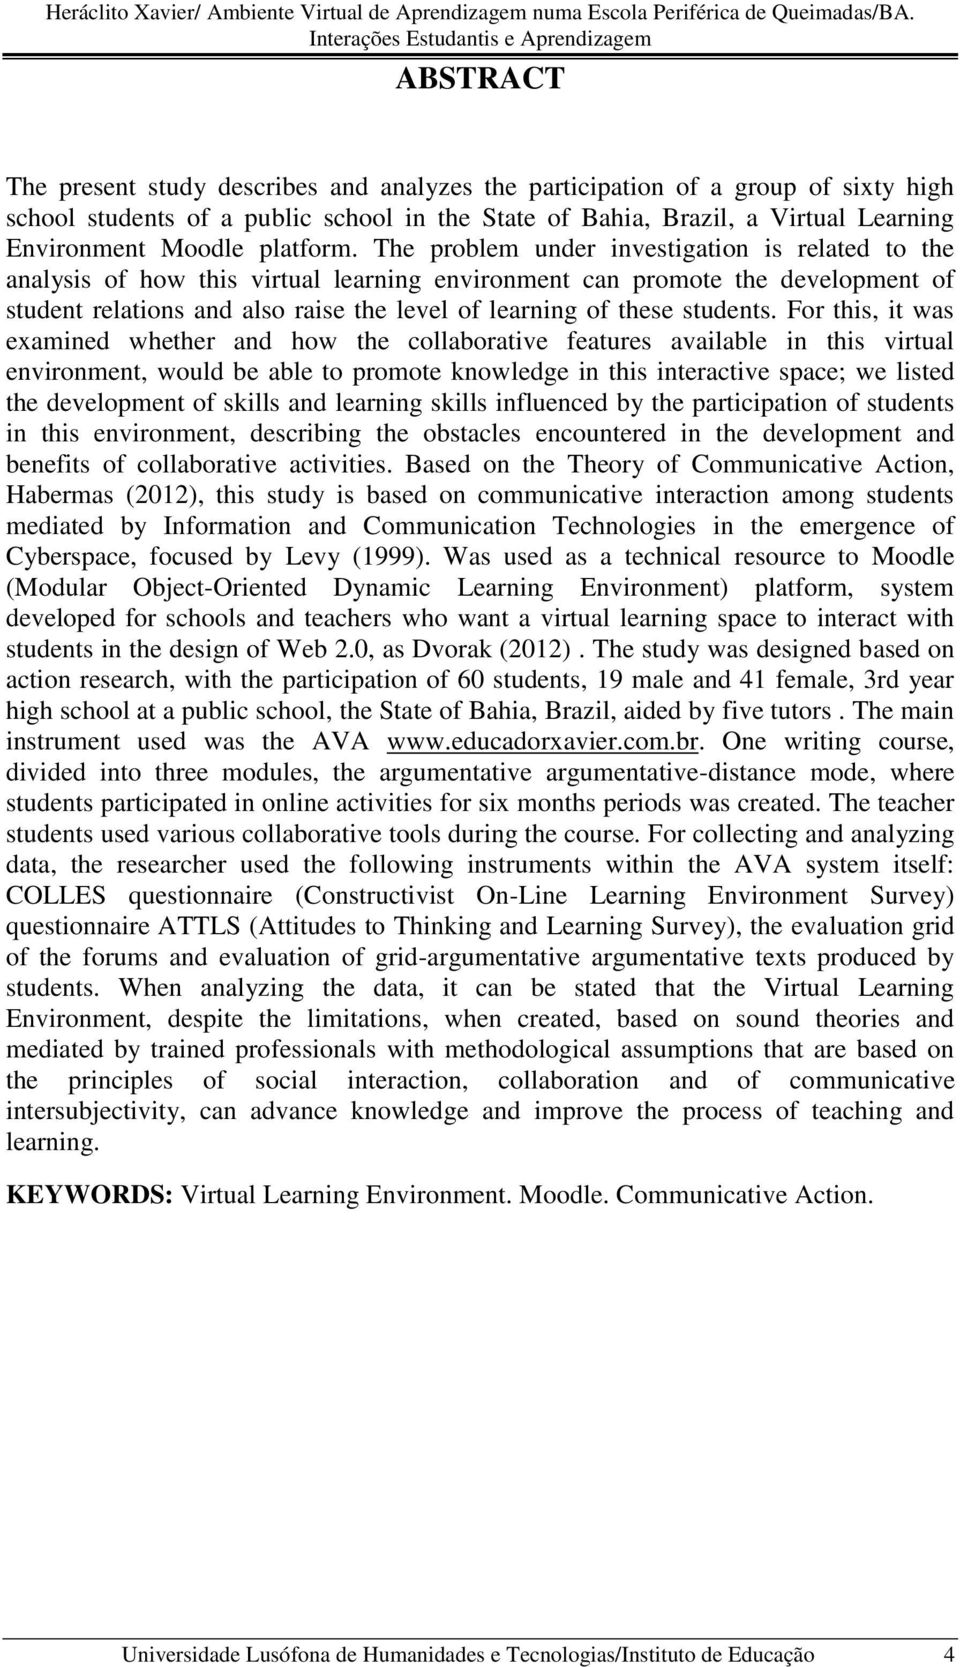 The problem under investigation is related to the analysis of how this virtual learning environment can promote the development of student relations and also raise the level of learning of these